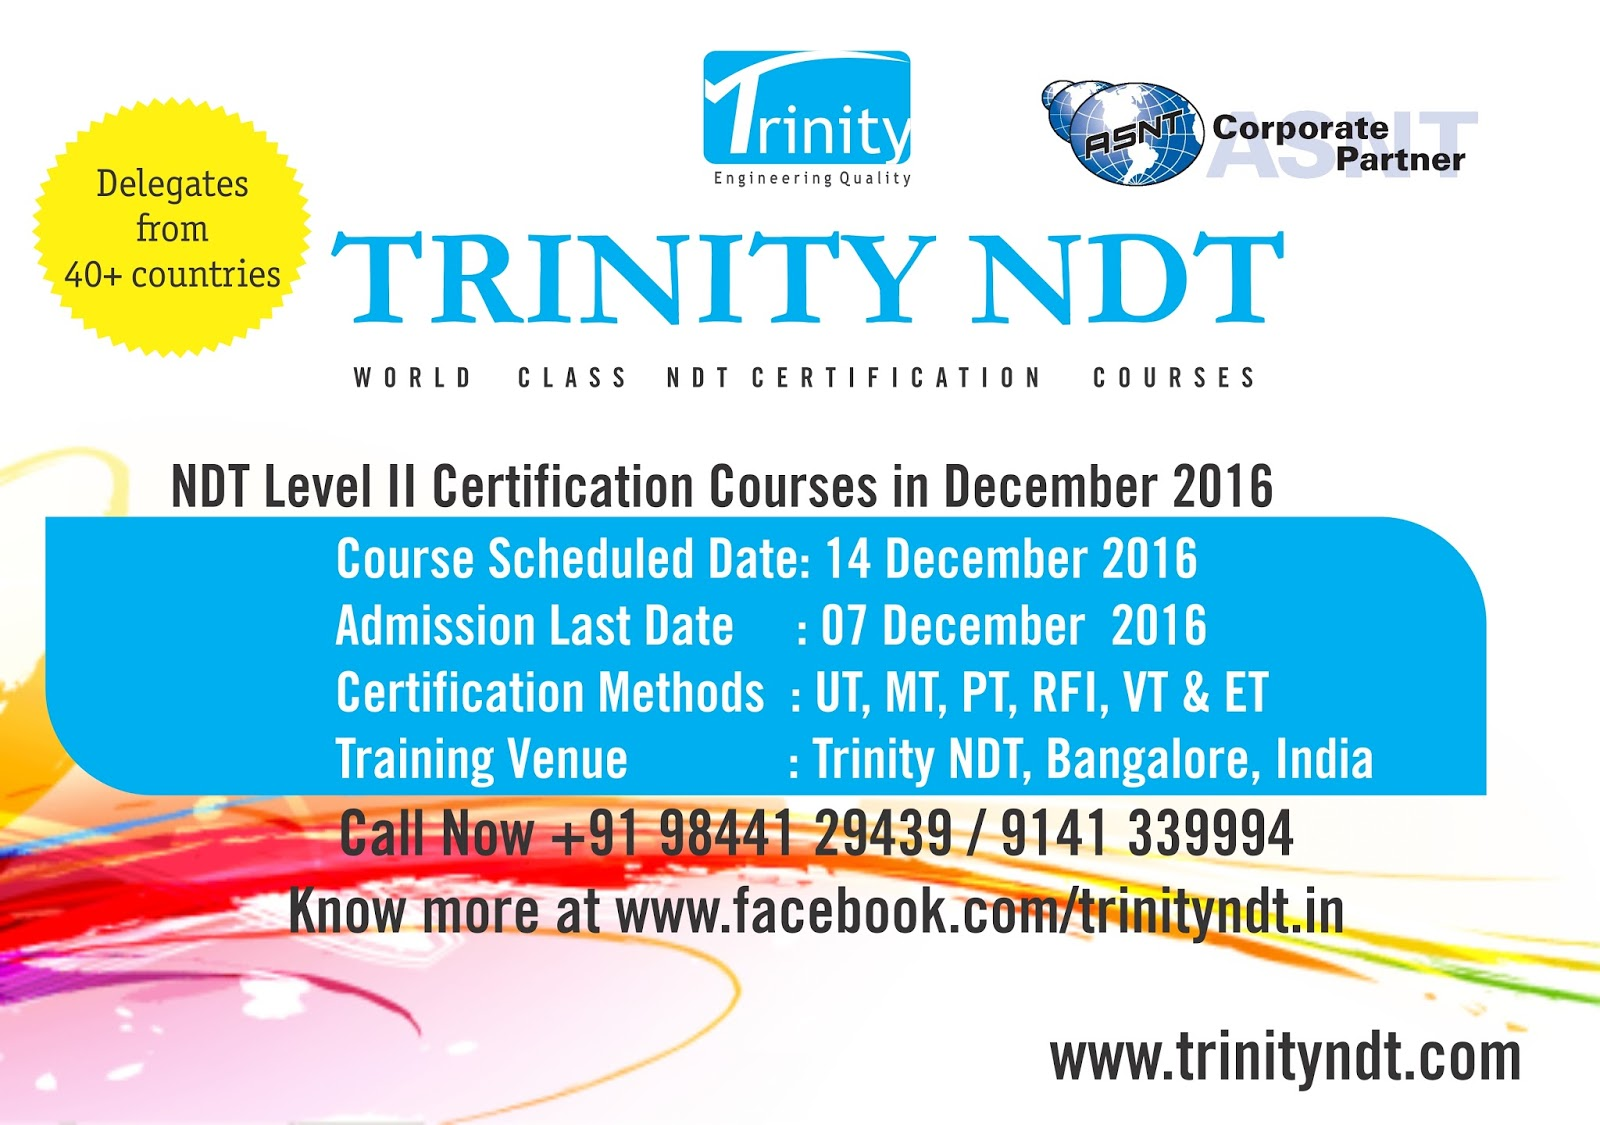 Nabl ndt labs ndt welding inspection training chennai mumbai ultrasonic radiography eddy current magnetic particle dye penetrant visual testing level 2 certifications trinity ndt bangalore india aiddatafo Gallery